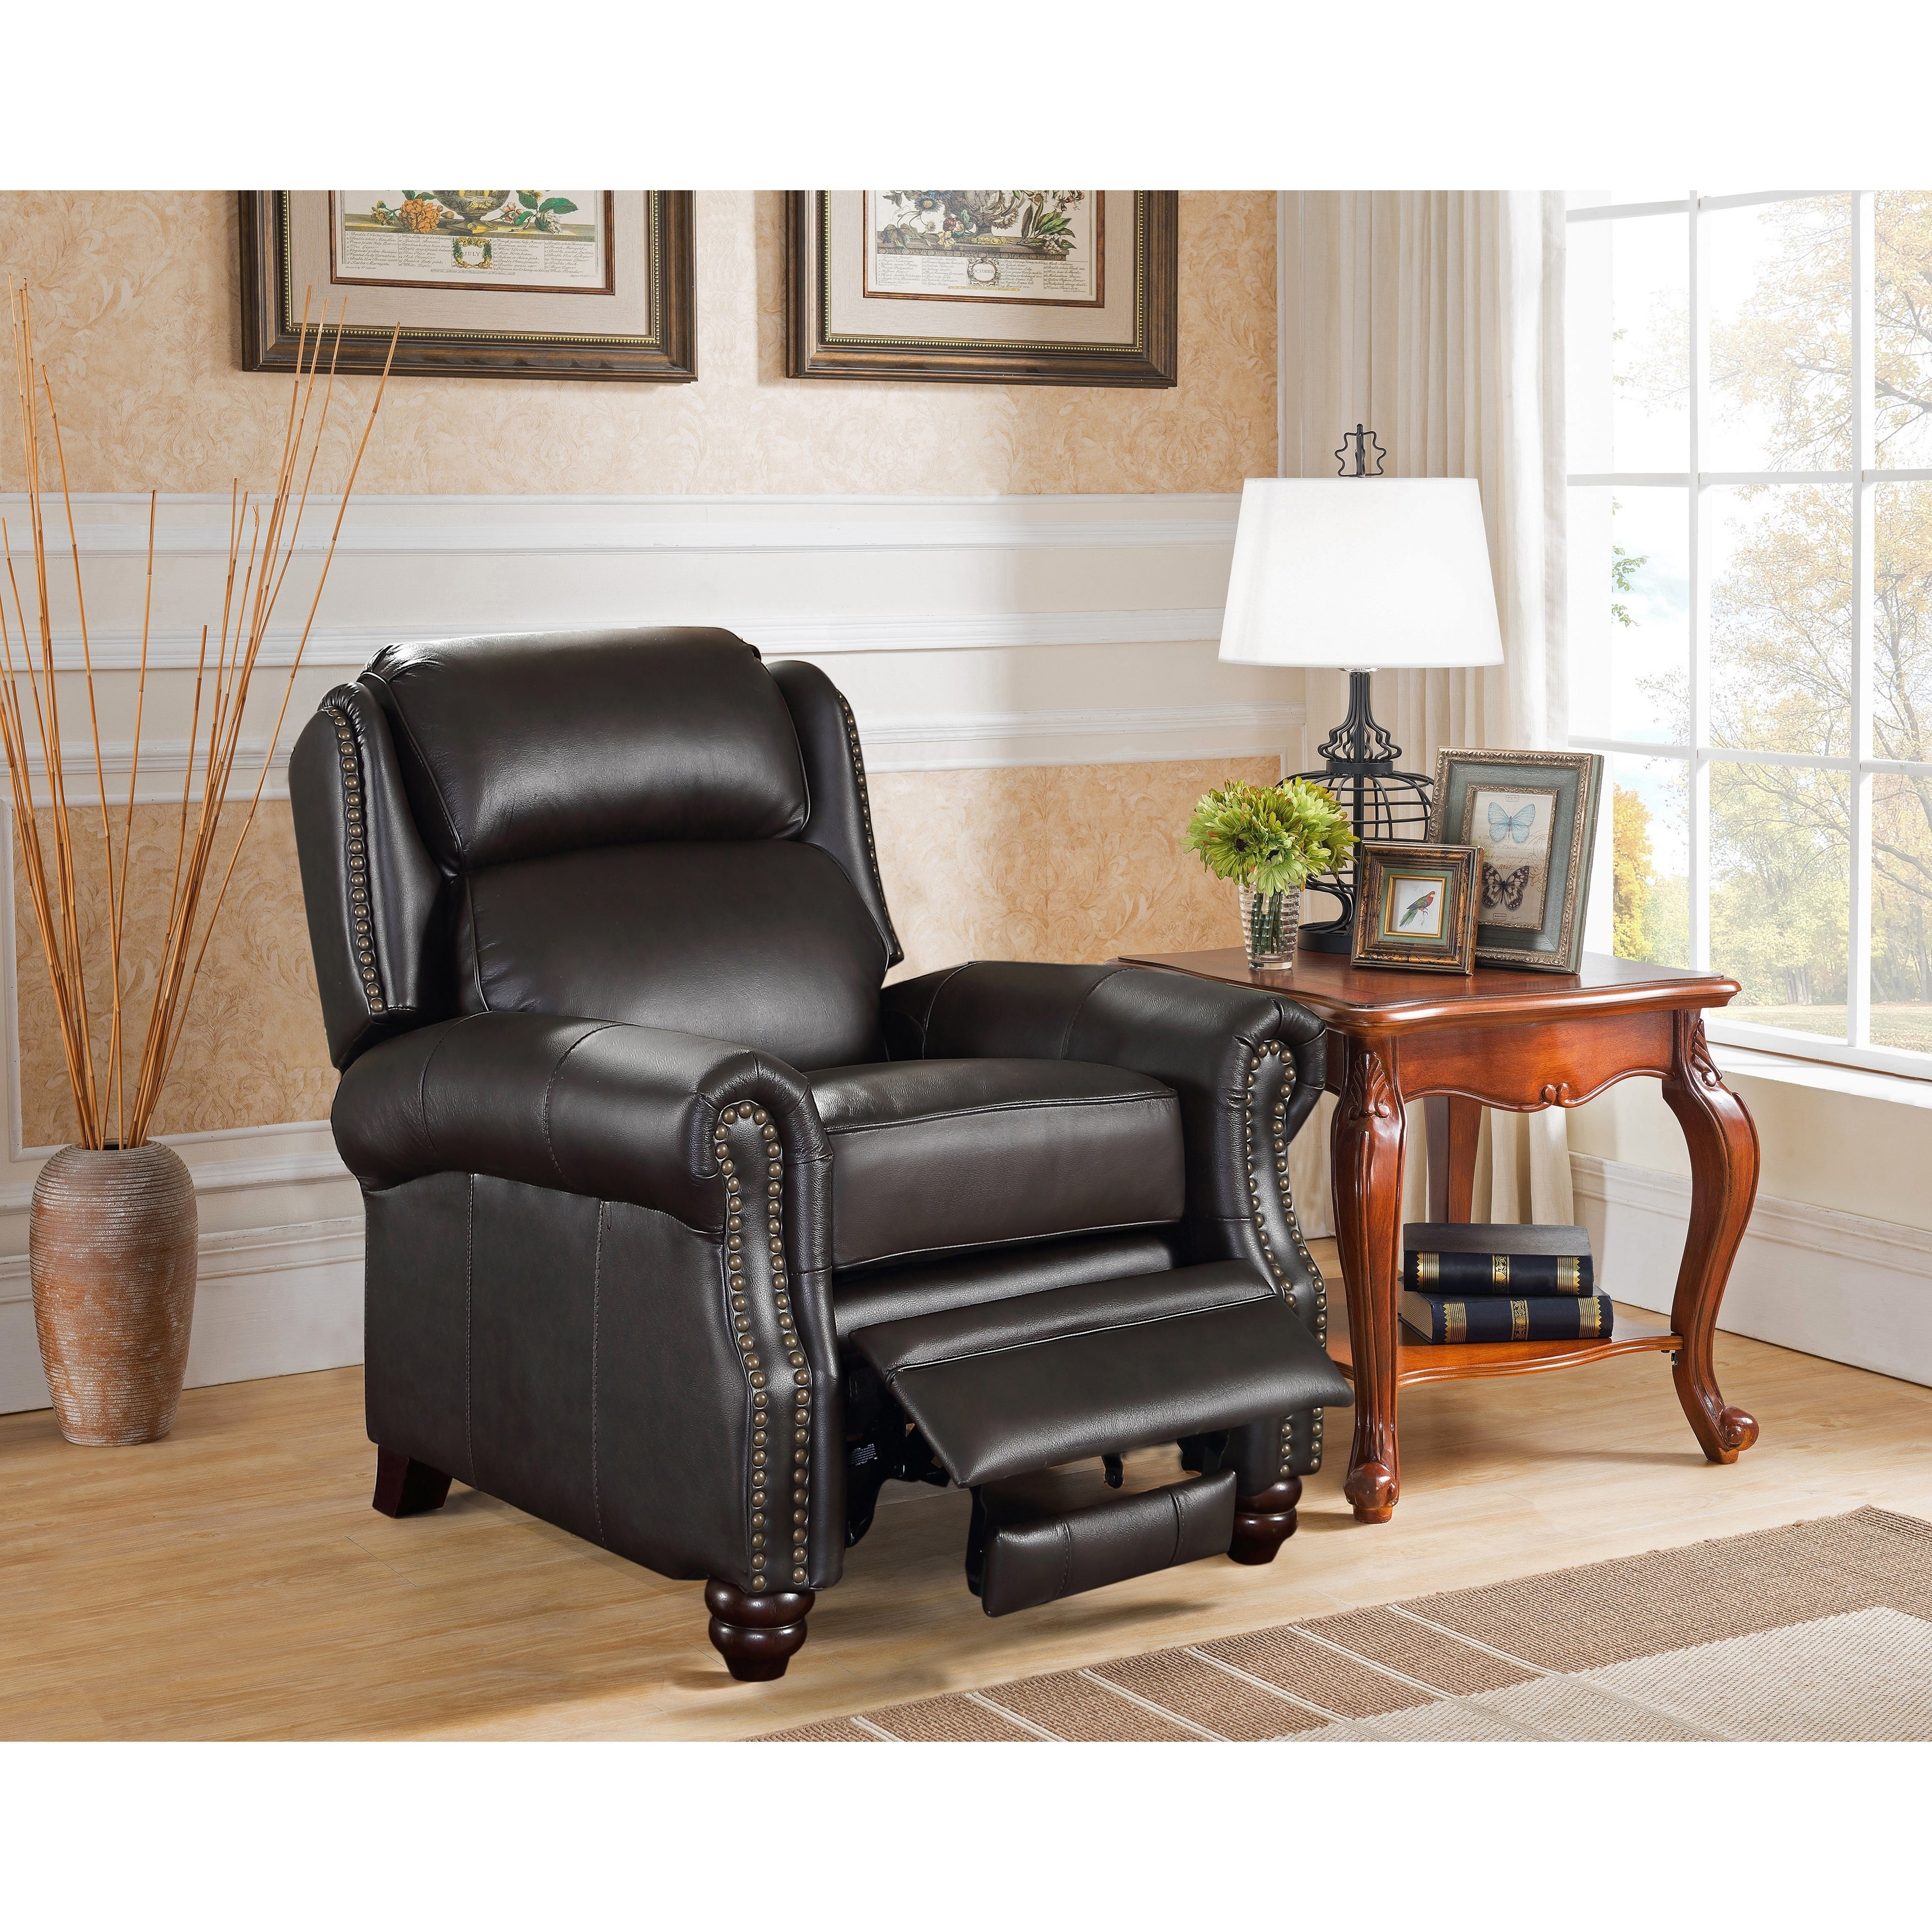 Madison Brown Premium Top Grain Leather Recliner Chair (Brown - Transitional - Rolled Arms)